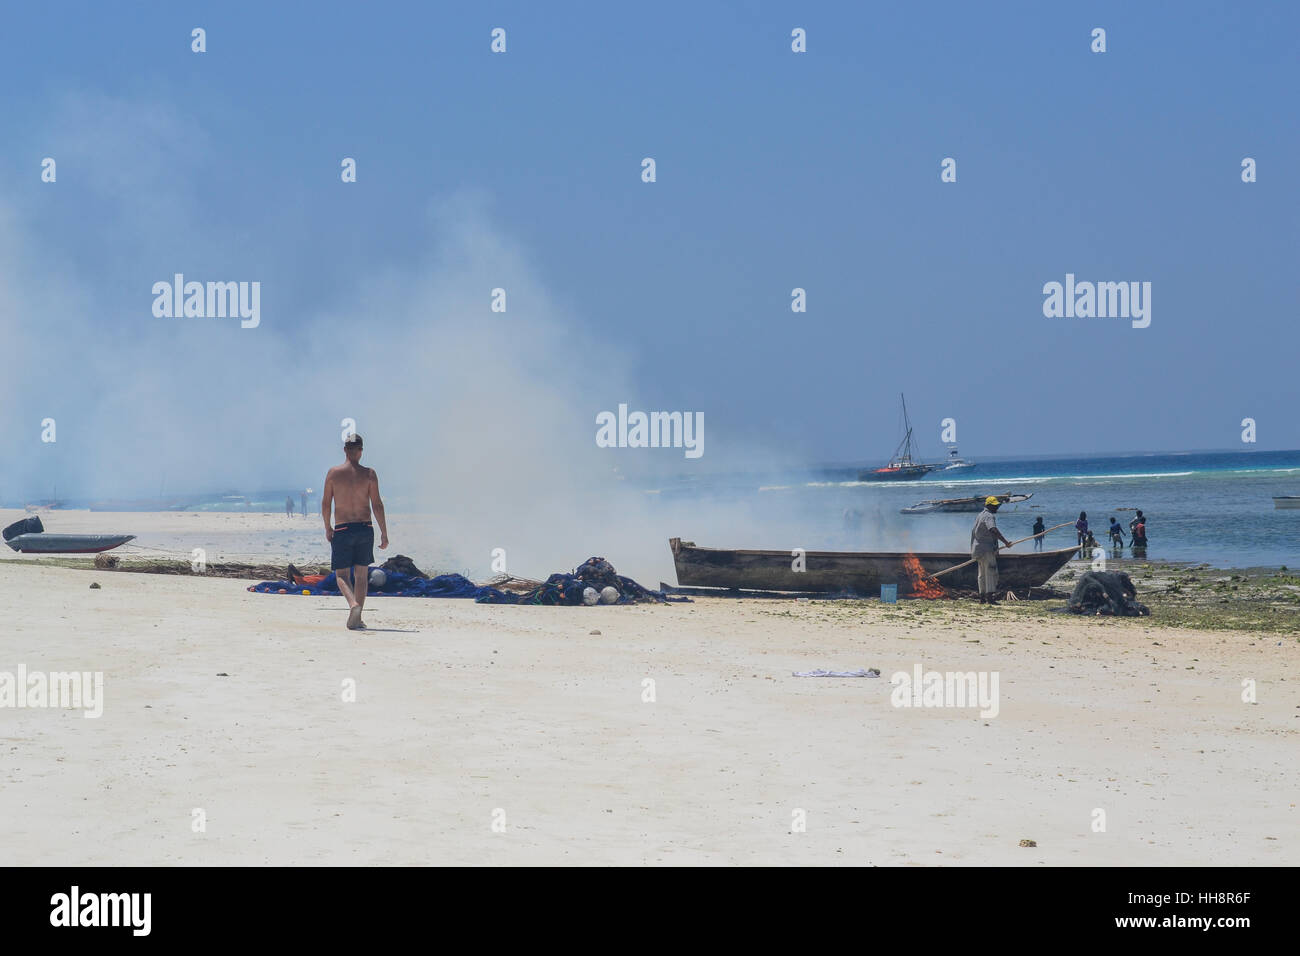 man is walking next boat burning in Nungwi beach - Stock Image